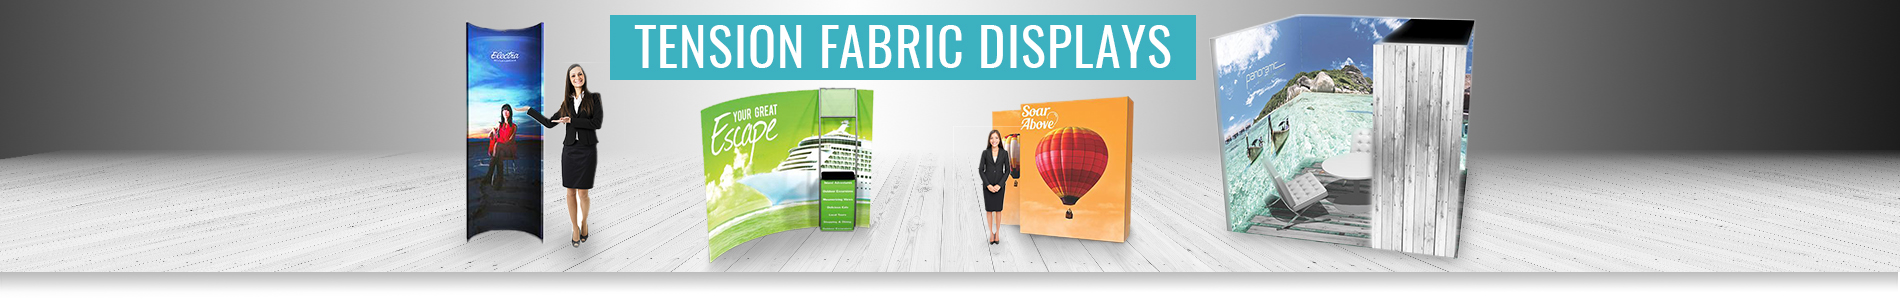 Tension Fabric Displays Media